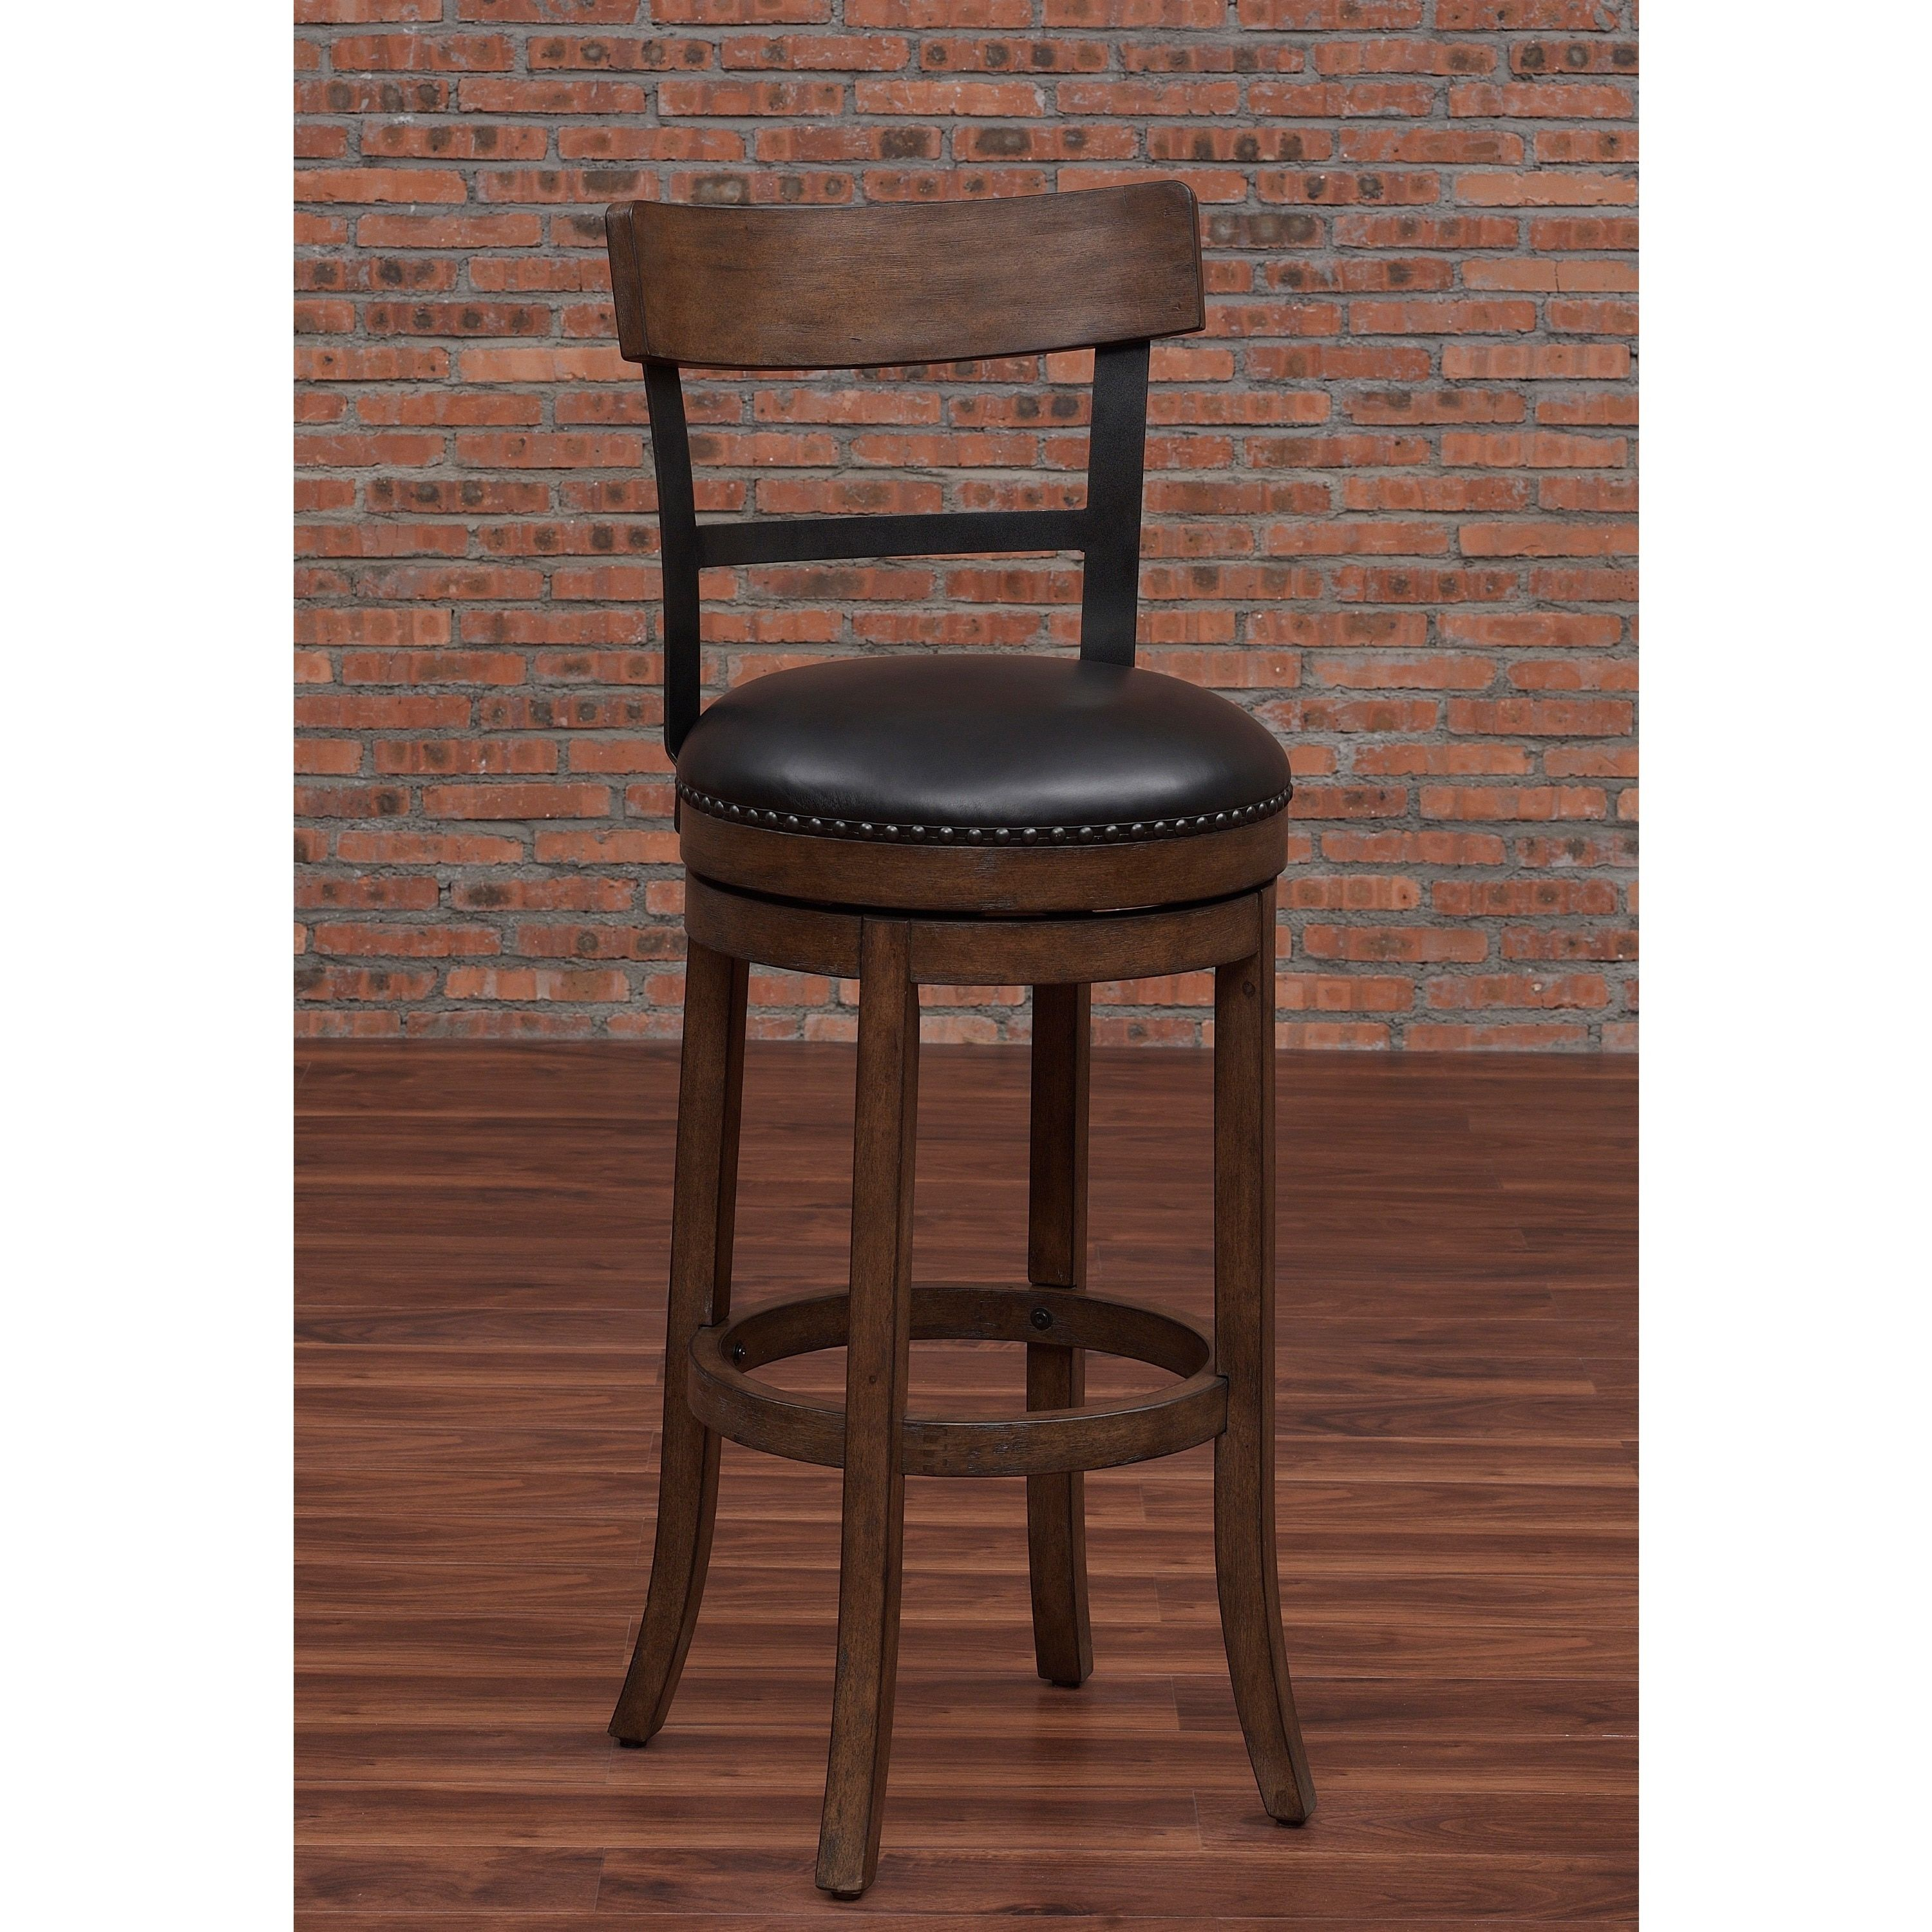 Greyson Living Siena Swivel Counter Stool Siena 26 Brown Bonded